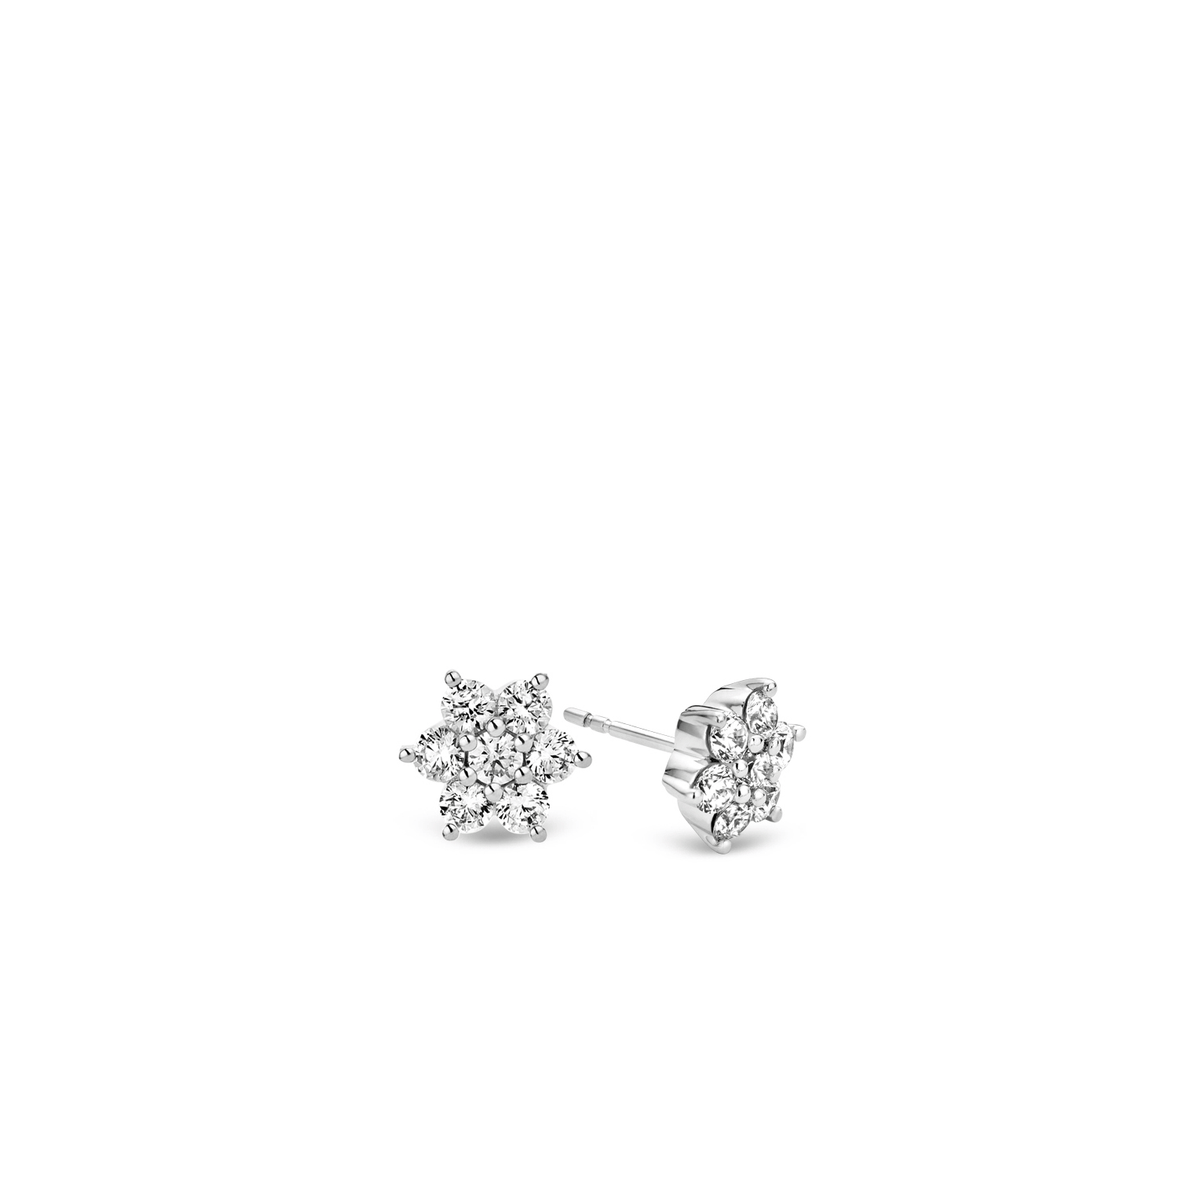 TI SENTO - Milano Earrings 7717ZI